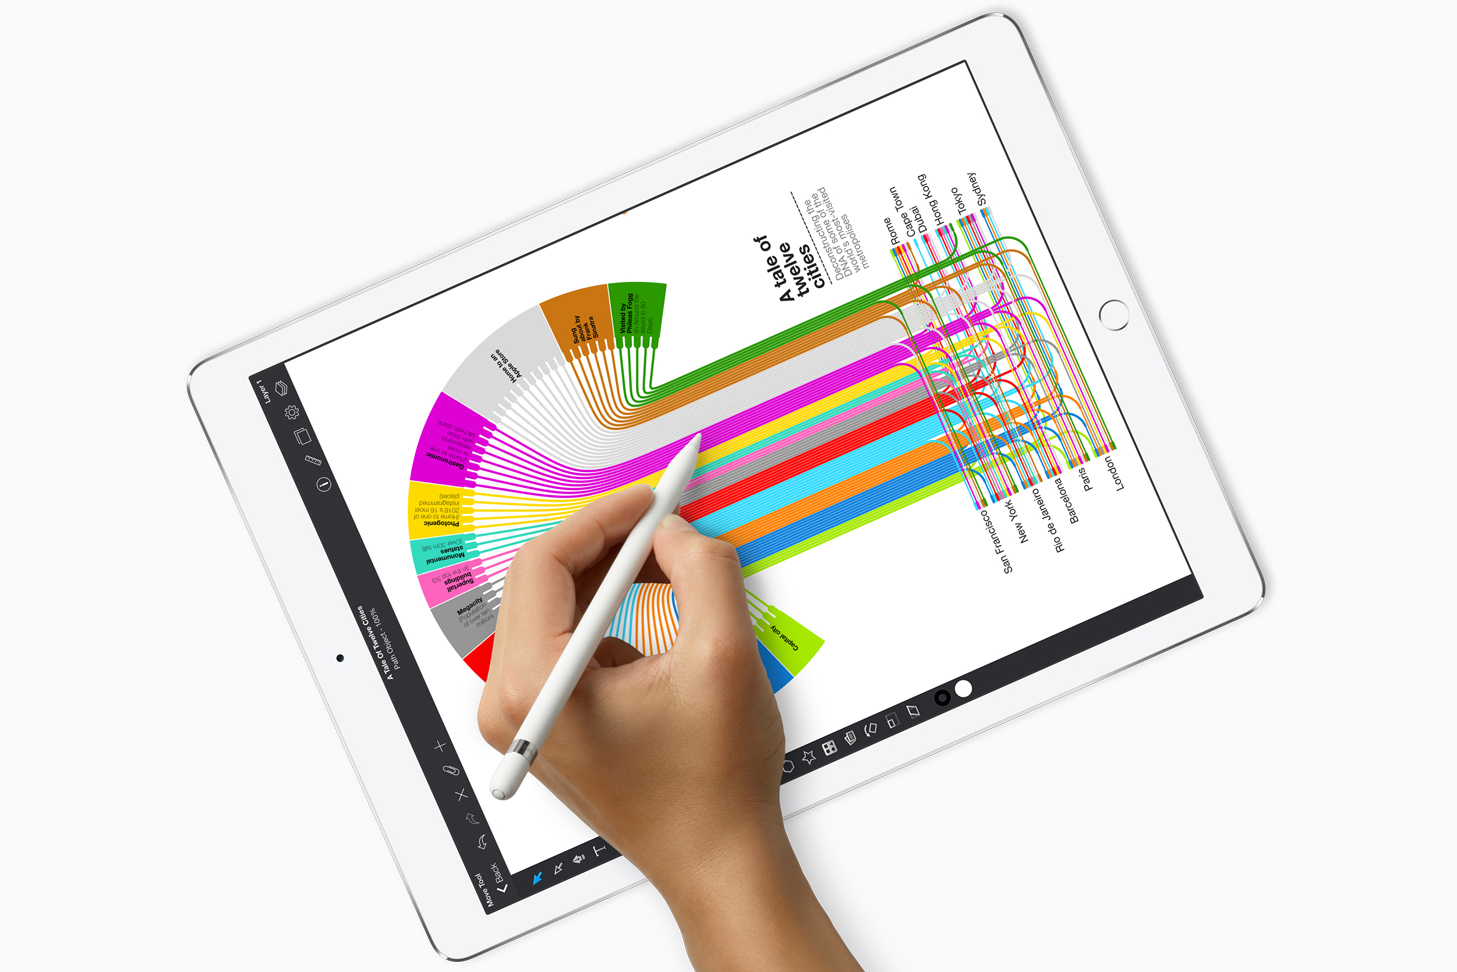 Apple Ipad Pro 129 2017 Tablet Review Reviews Usb 2036 46 Wiring Diagram